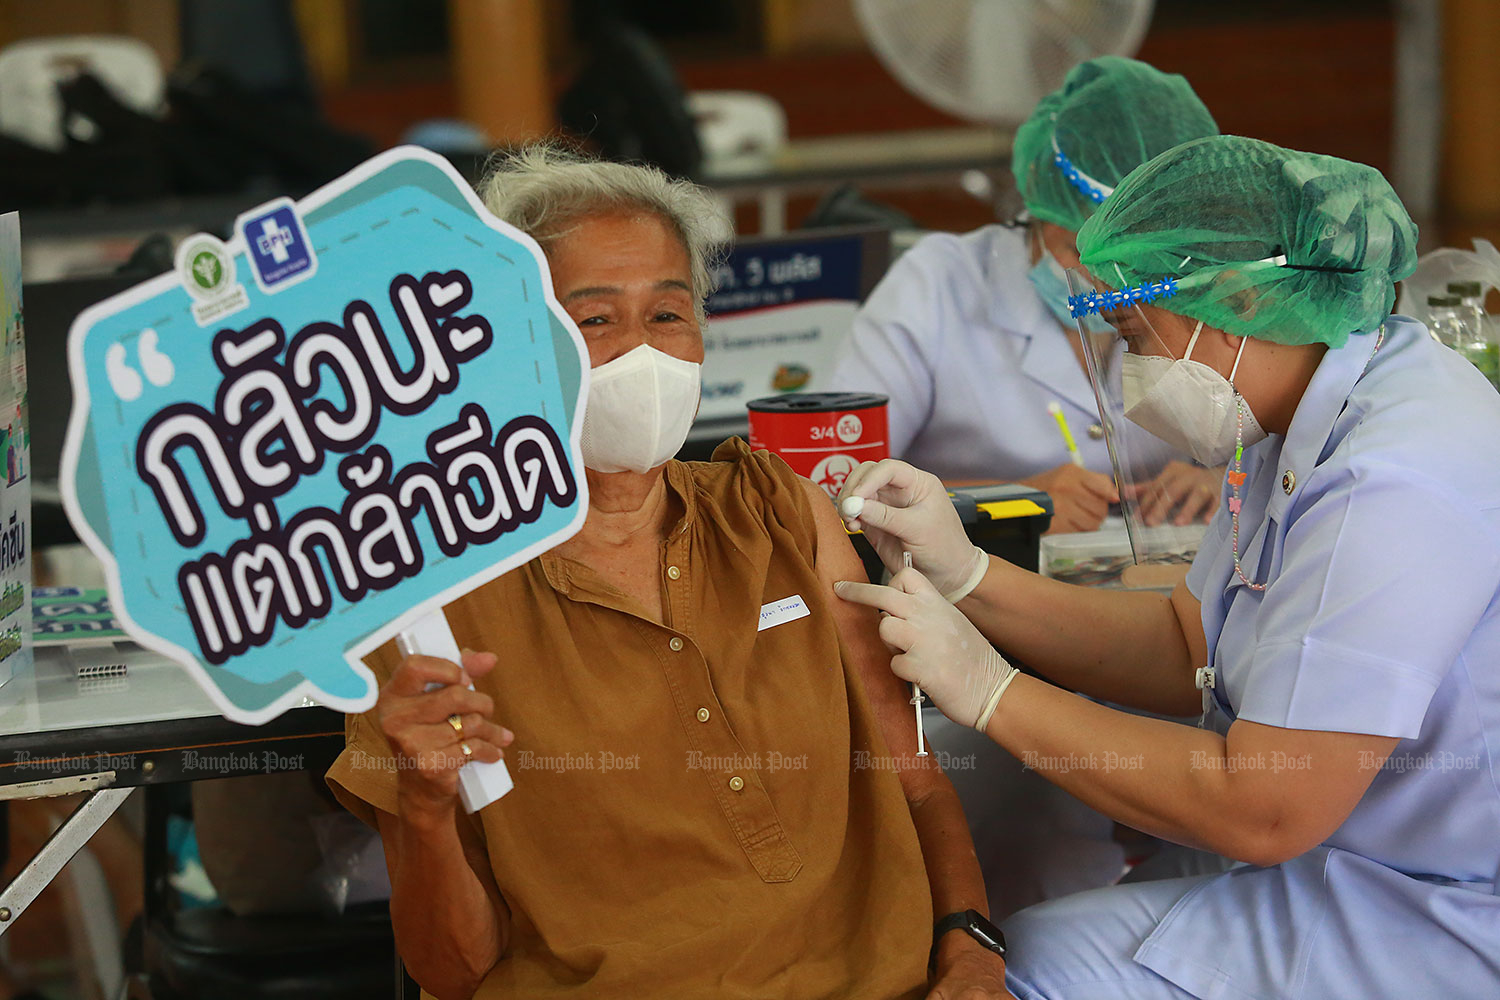 Thousands to get Sinopharm vaccine